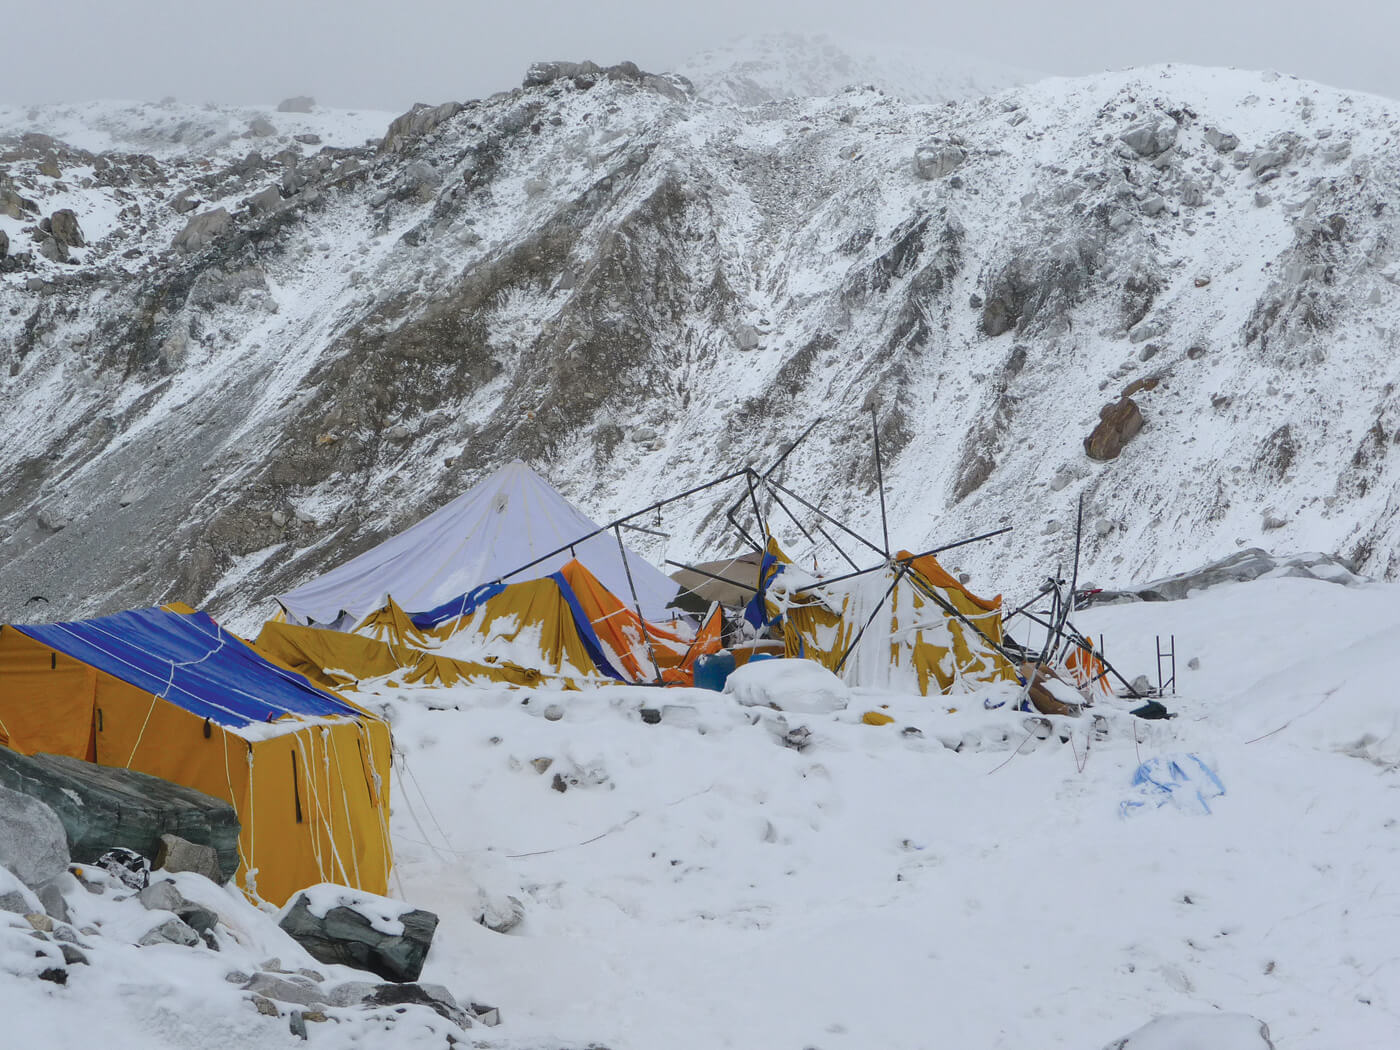 On Everest 4 years after the Nepal Earthquake